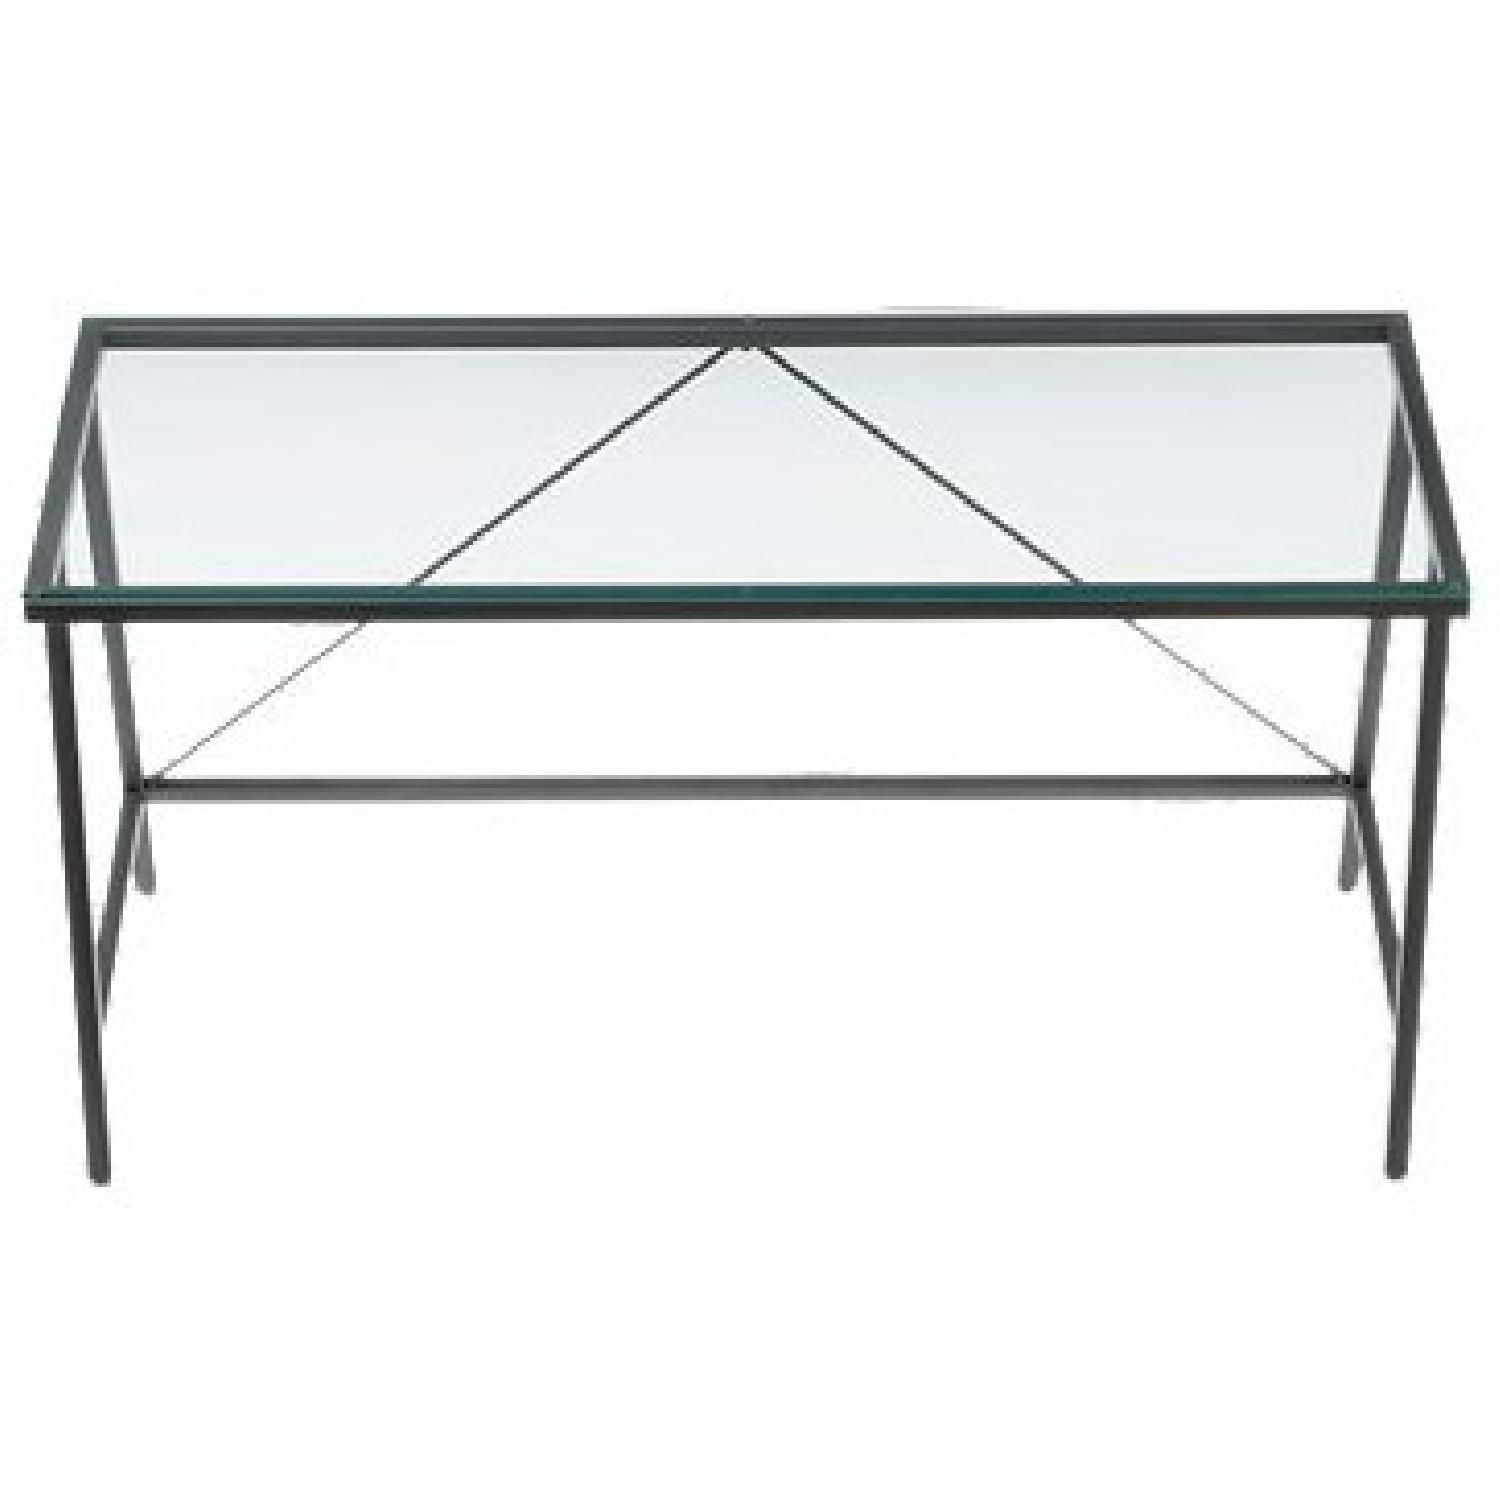 CB2 Dwight Console Desk 246 driggs Pinterest